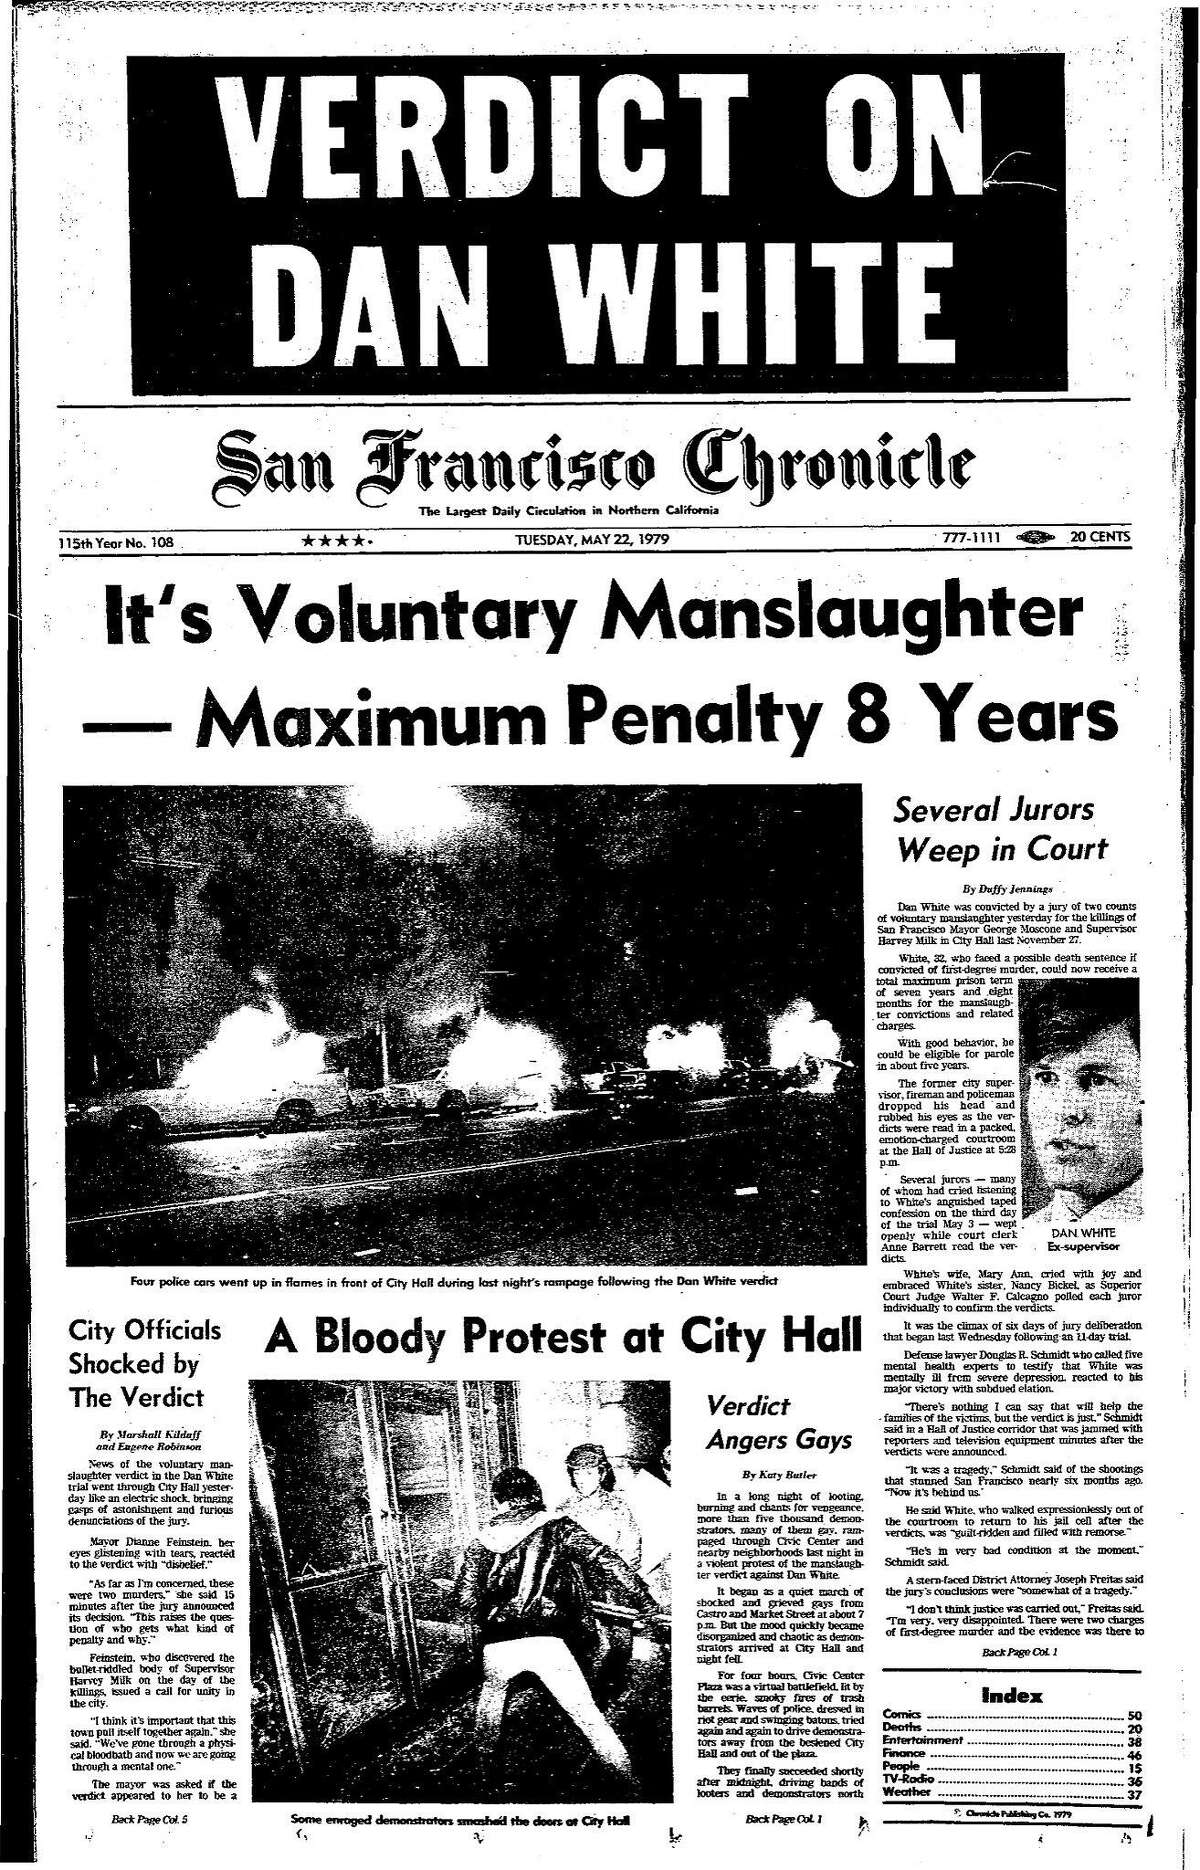 Historic Chronicle Front Page May 22, 1979 Dan White Verdict sets off violent protests Chron365, Chroncover